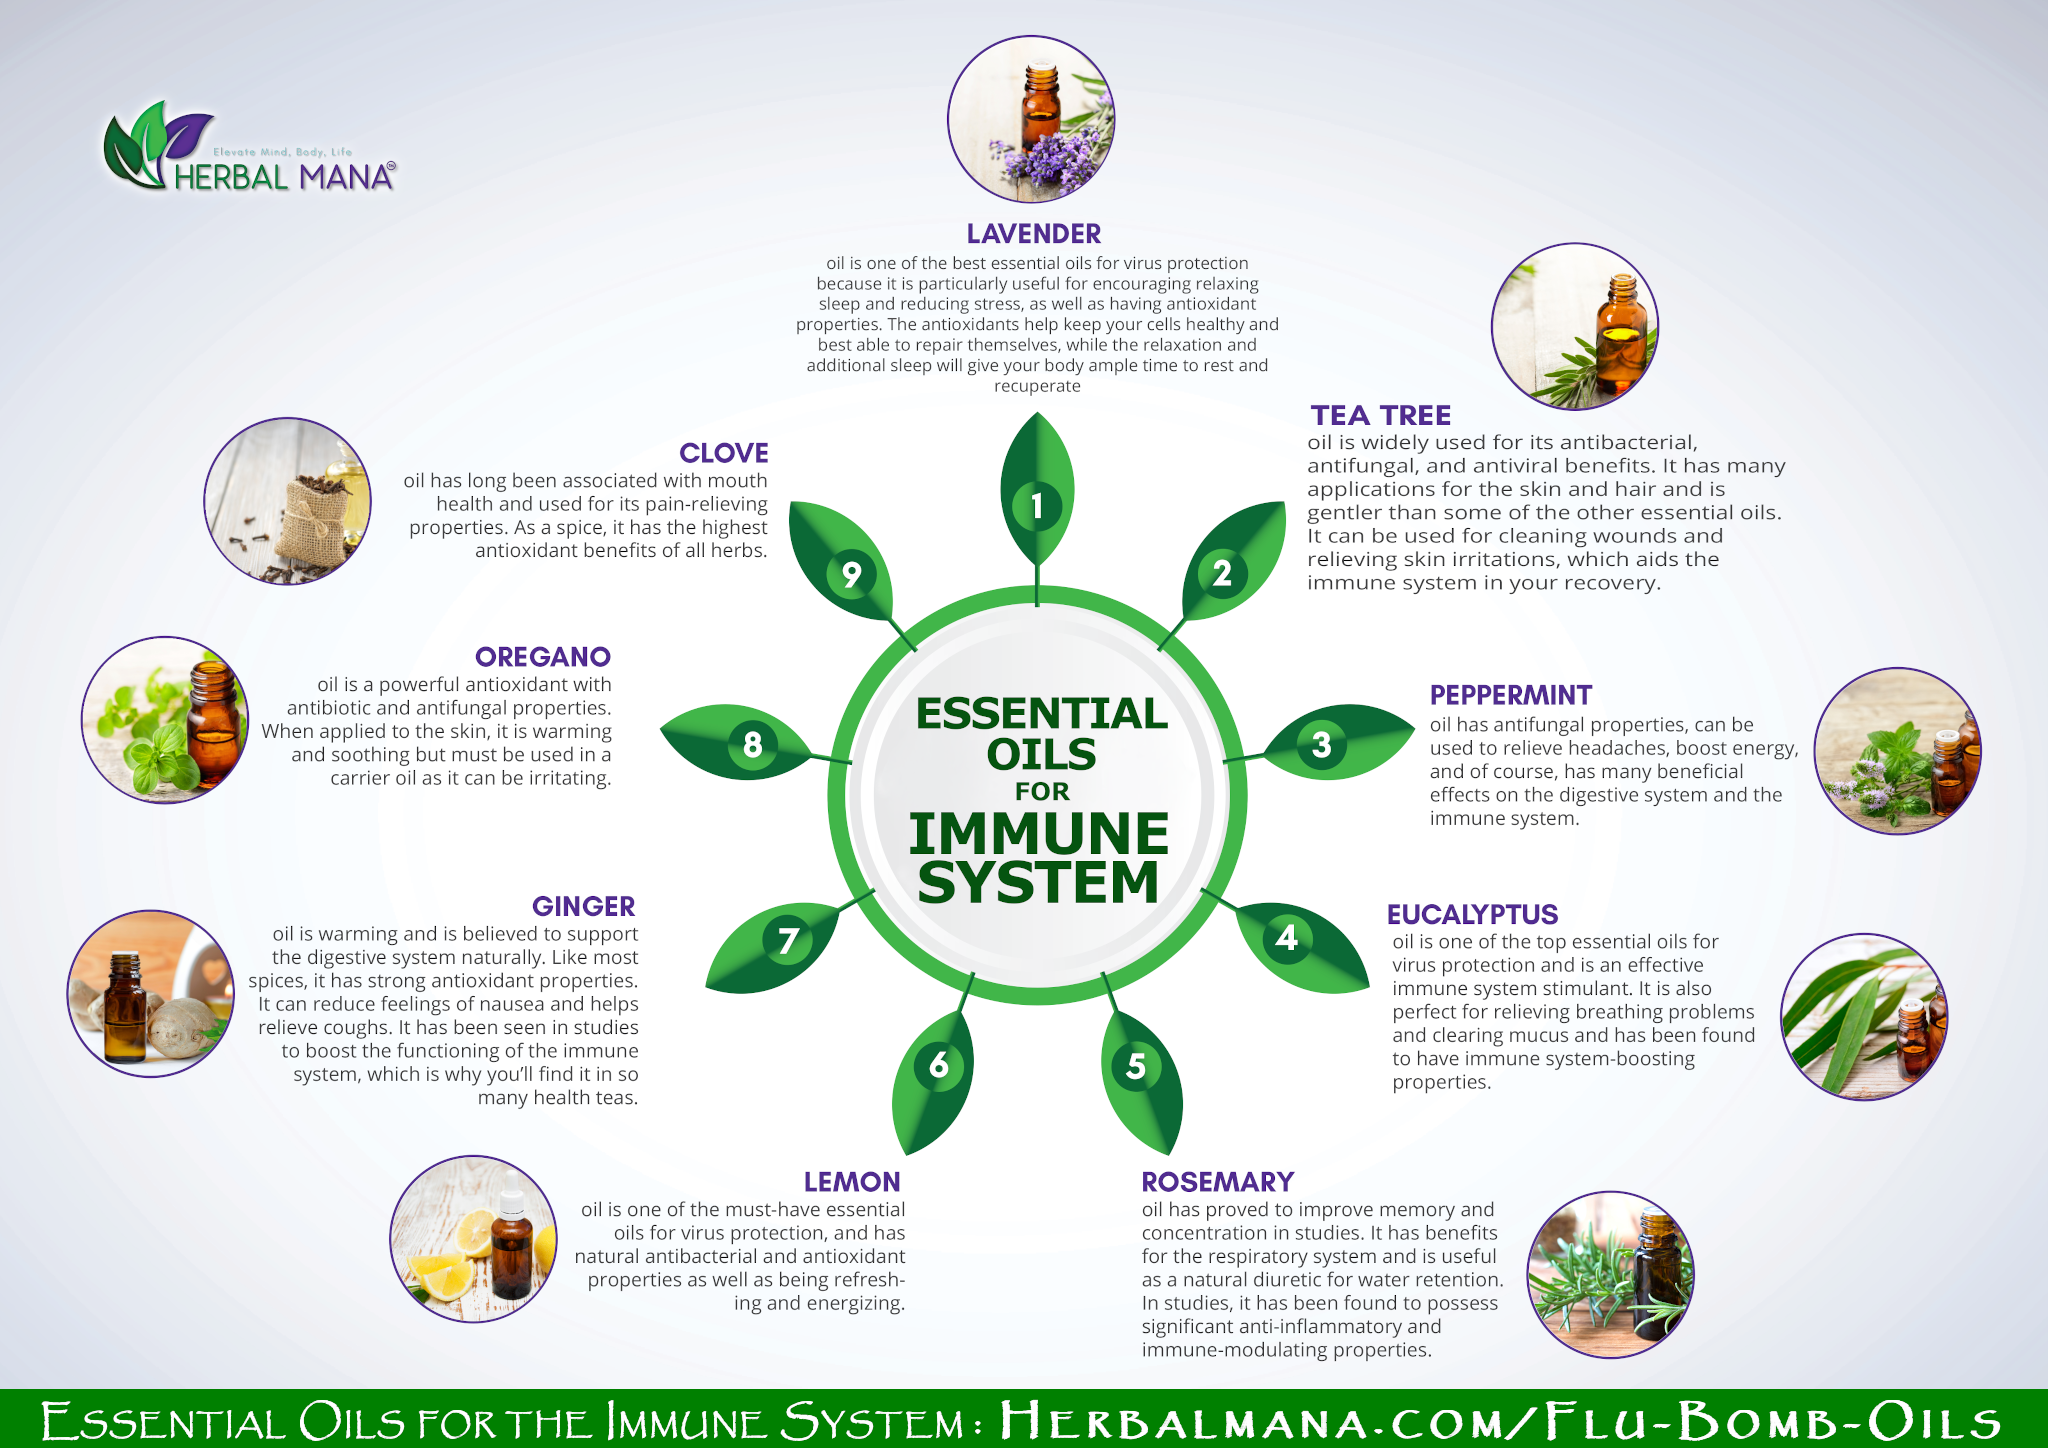 9 Essential Oils for Immune System Infographic